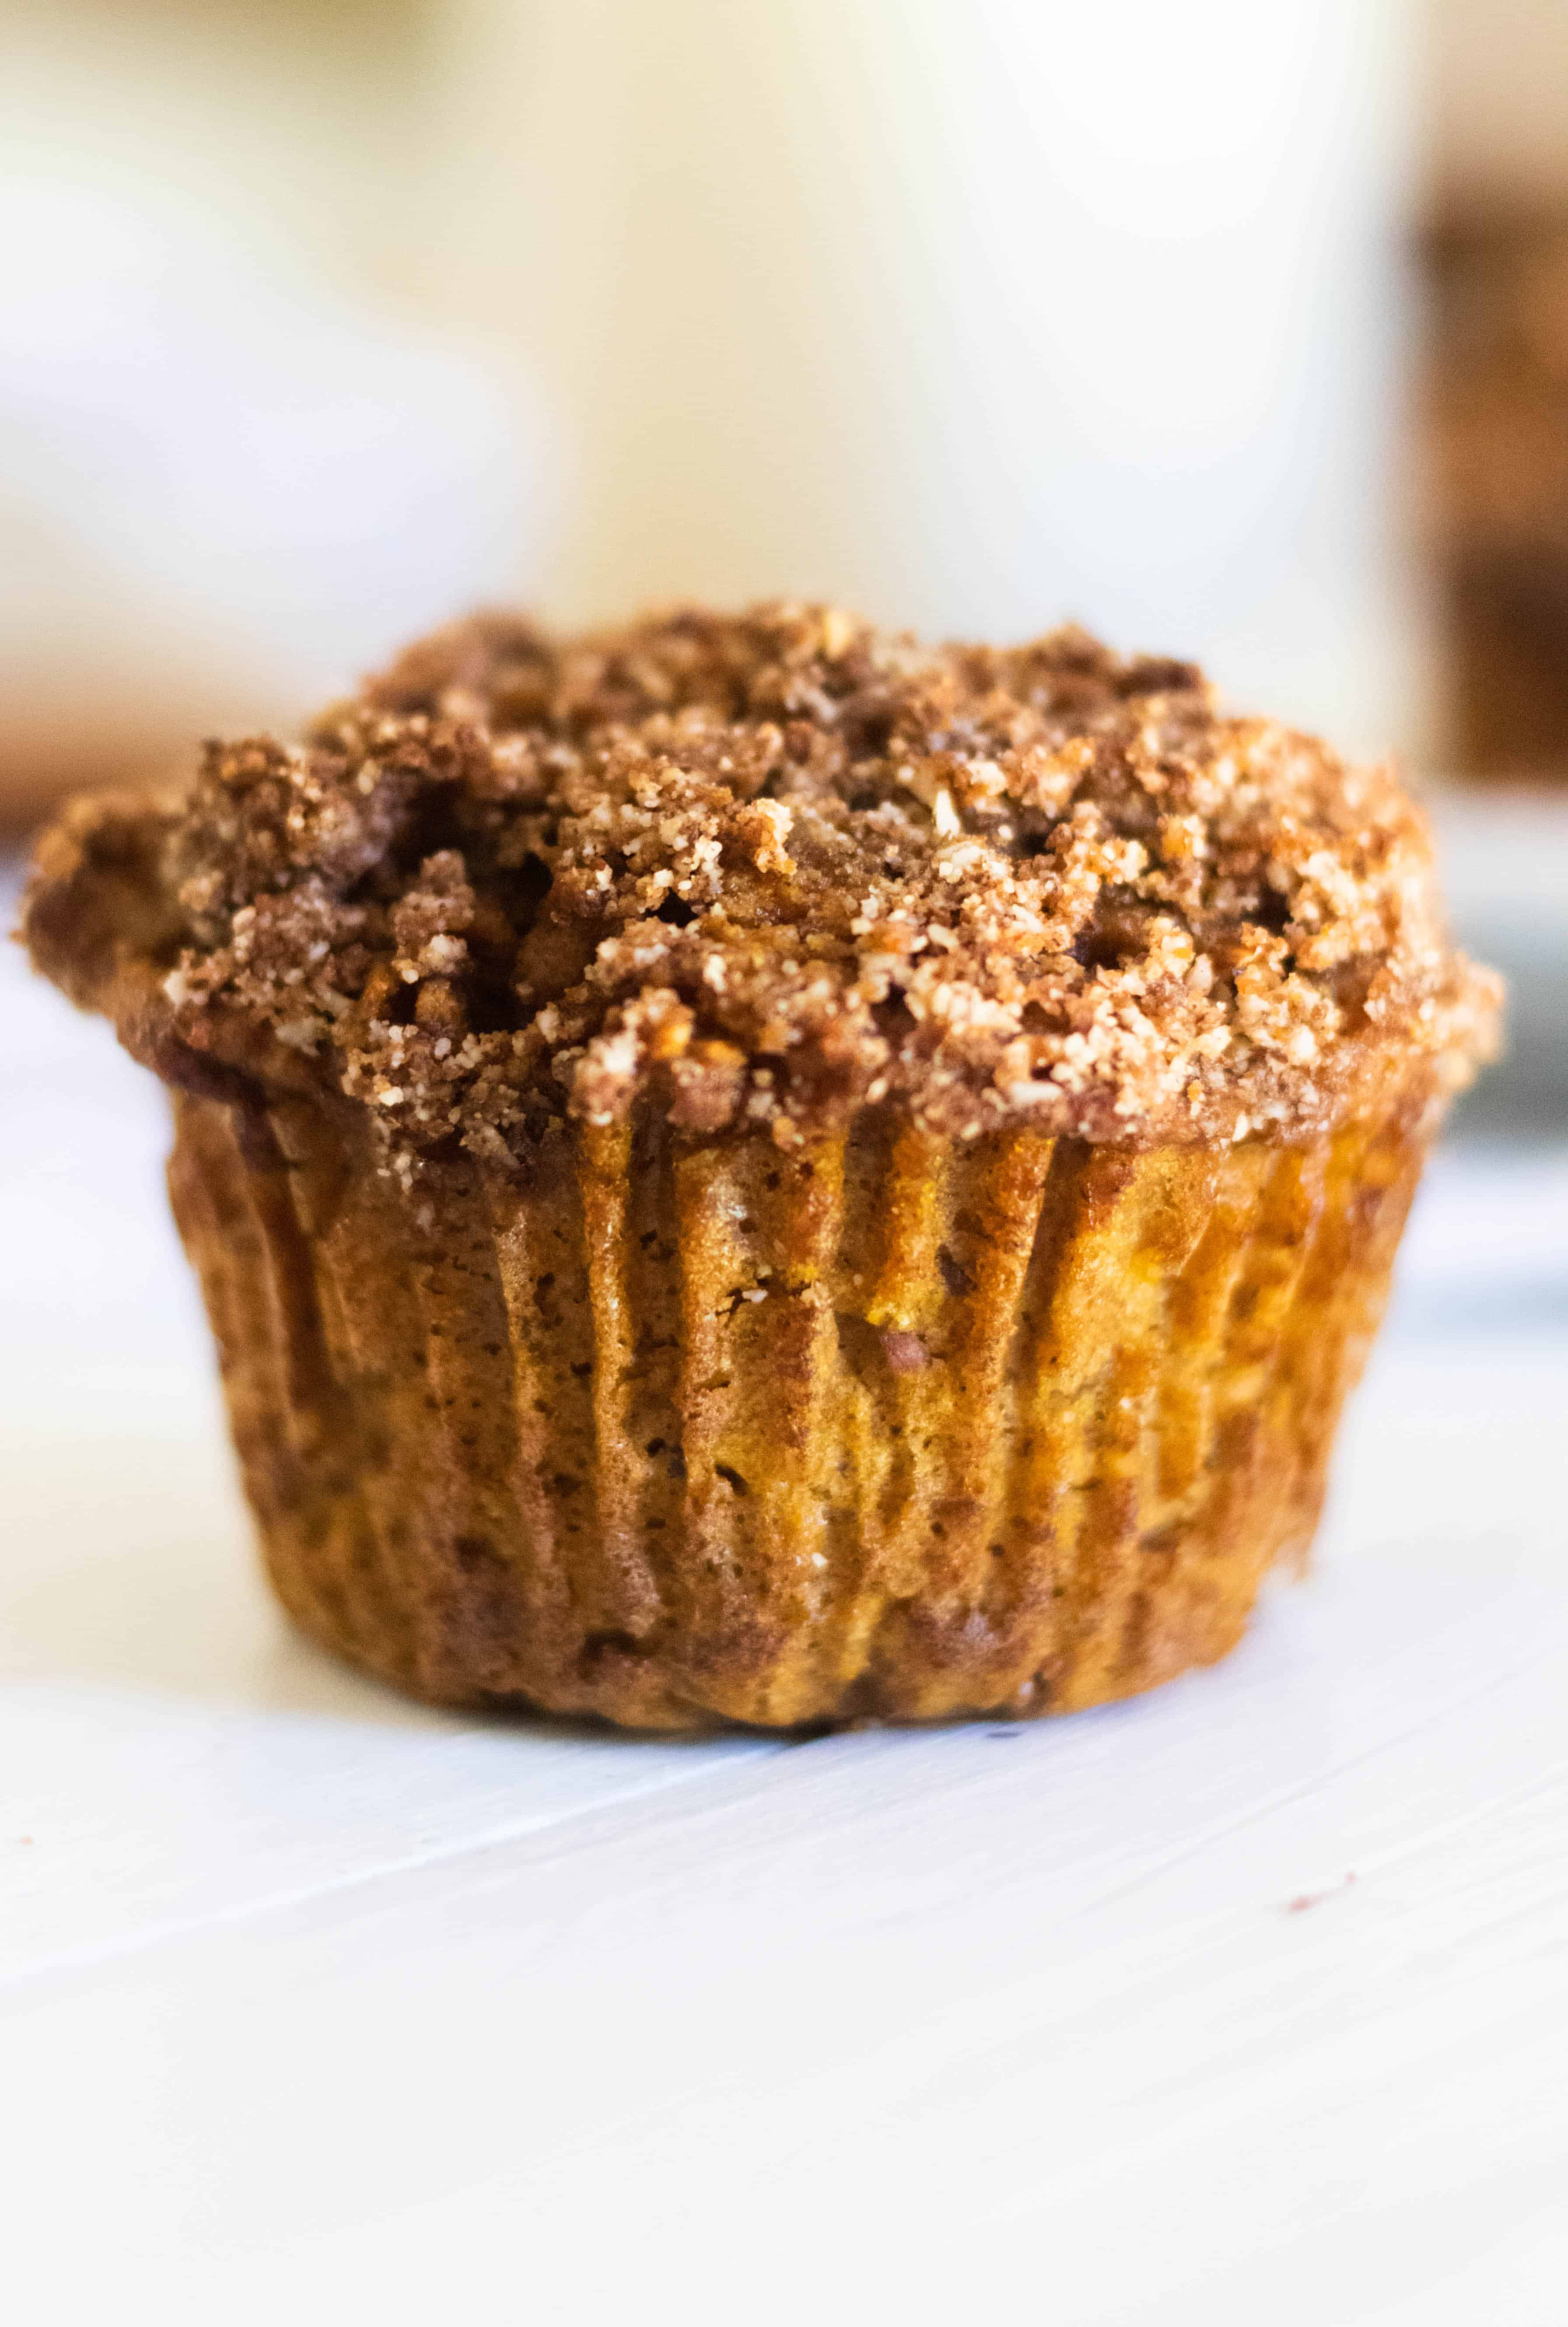 Homemade pumpkin muffin with cinnamon crumble on white table.